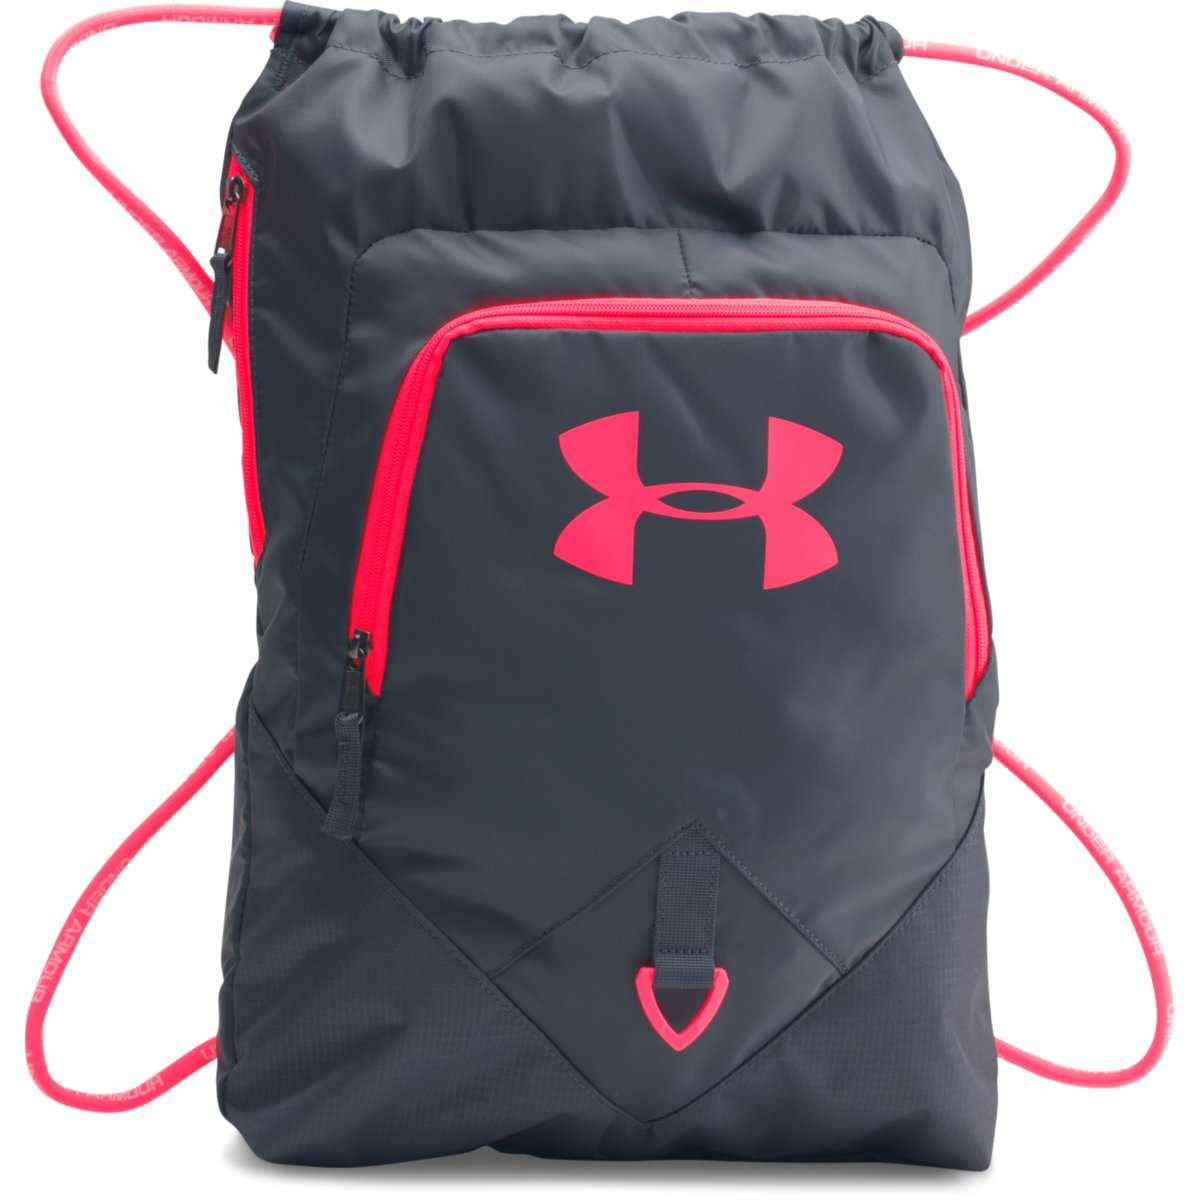 d1ed8f7bd8 Under Armour Undeniable Sackpack - Stealth Gray/Pink